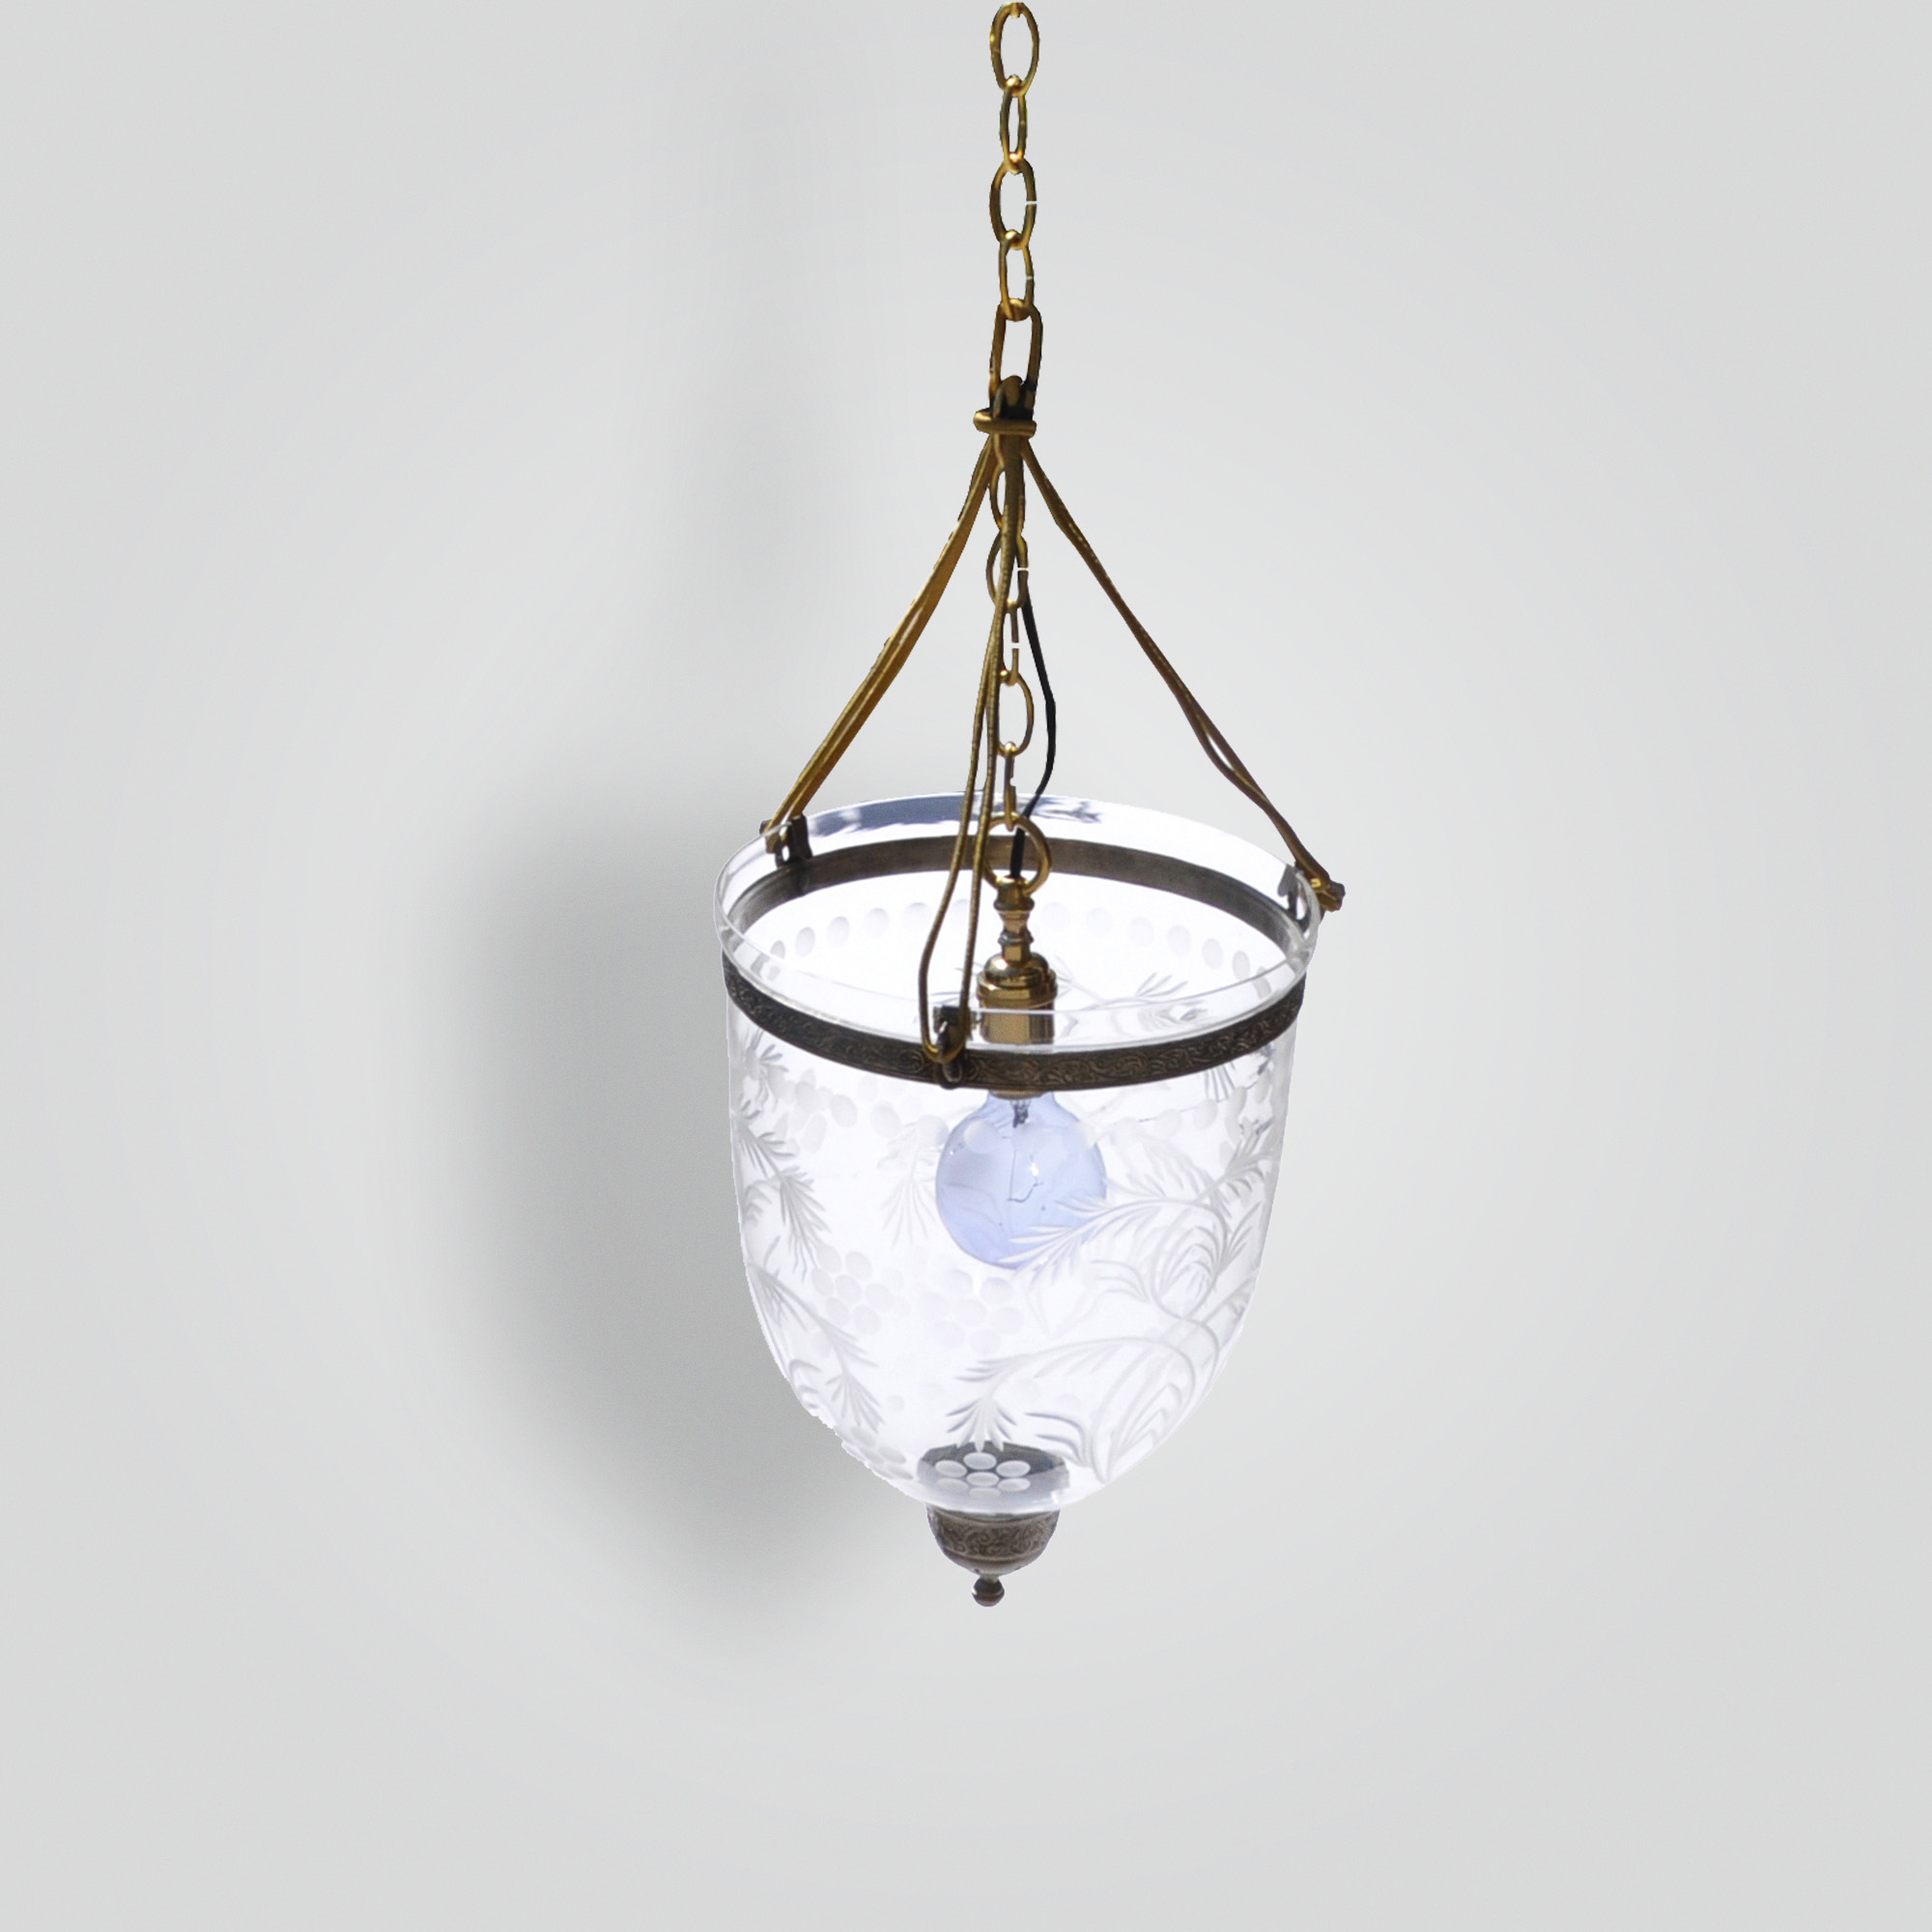 7011-cb2-st-sh-etched-bell-jar-eclectic – ADG Lighting Collection